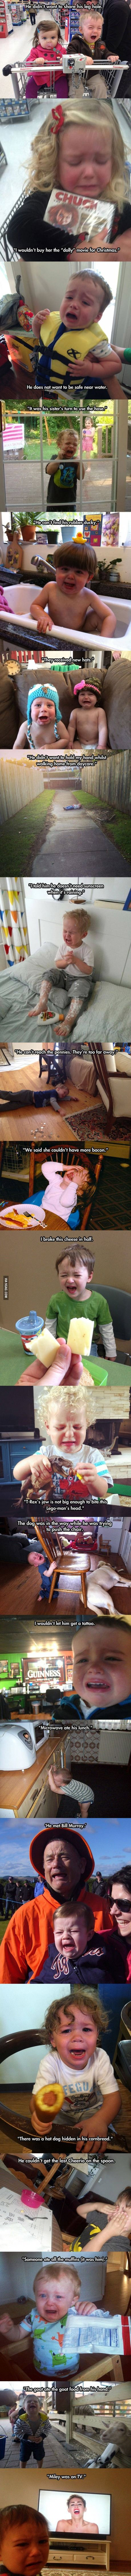 These Devastated Kids Cry For The Funniest Reasons Ever